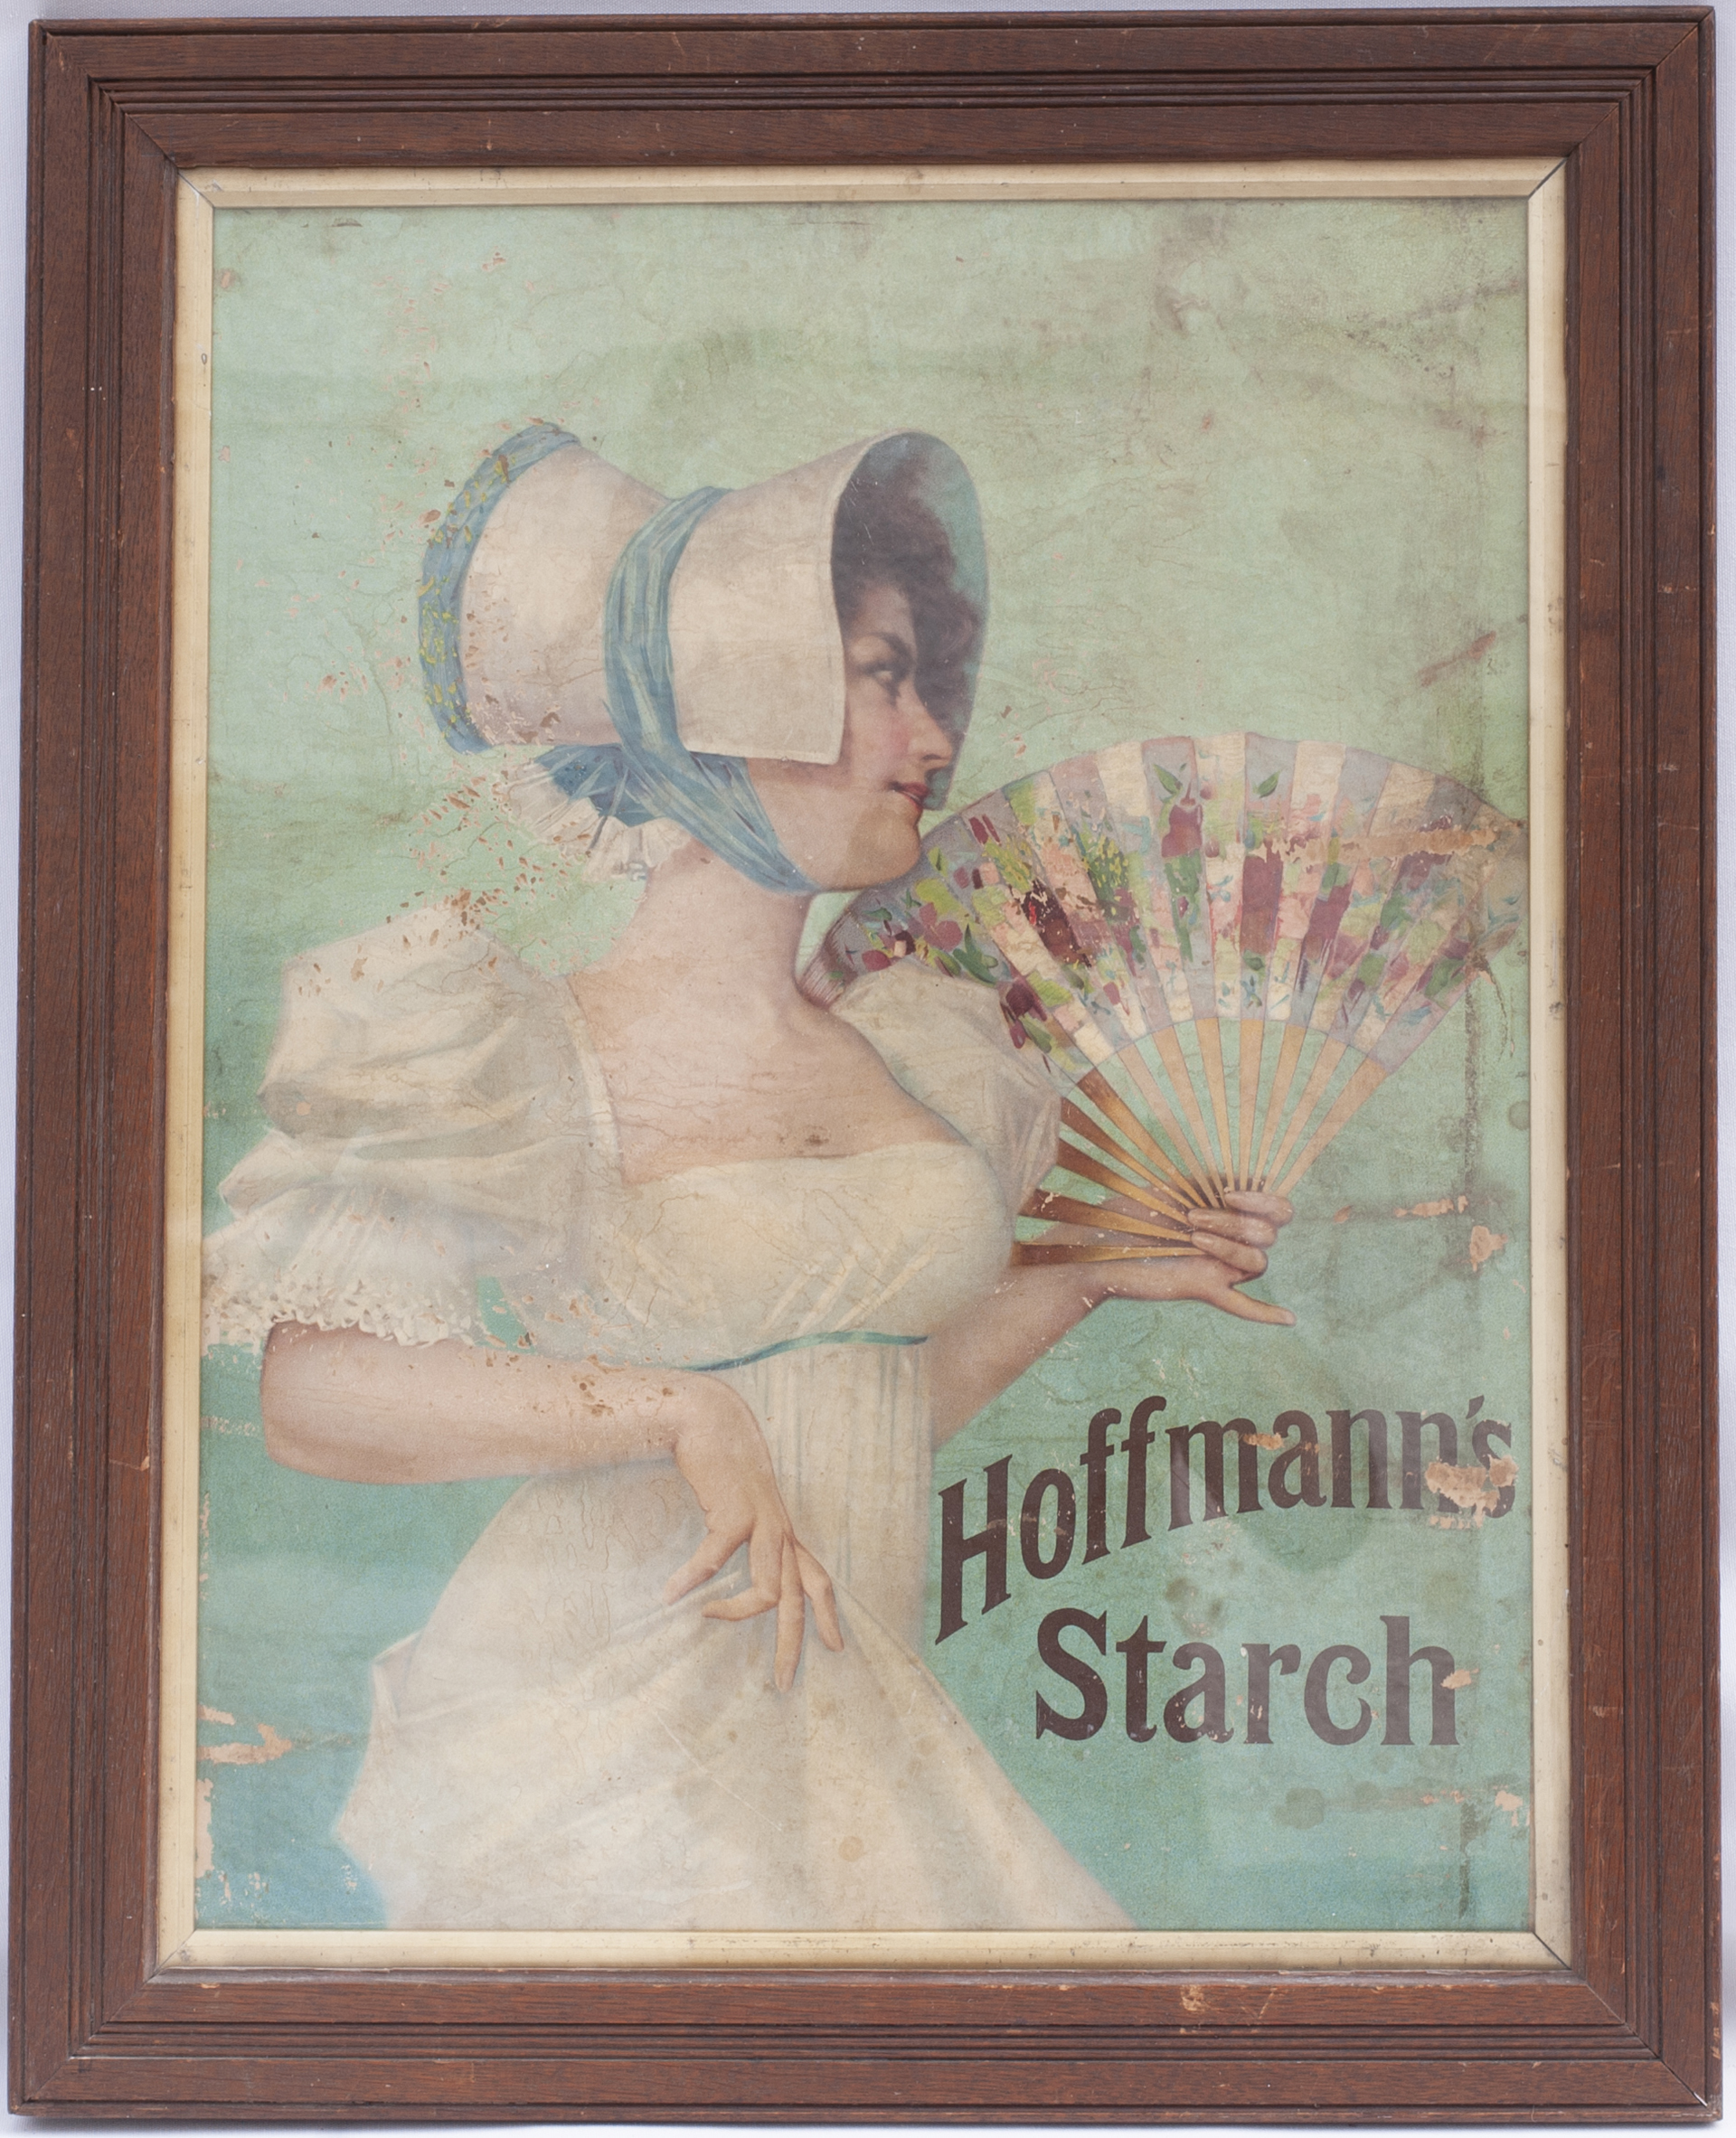 Framed & glazed advertising show card. HOFFMANS STARCH. Measures 22.5 in x 27 in.